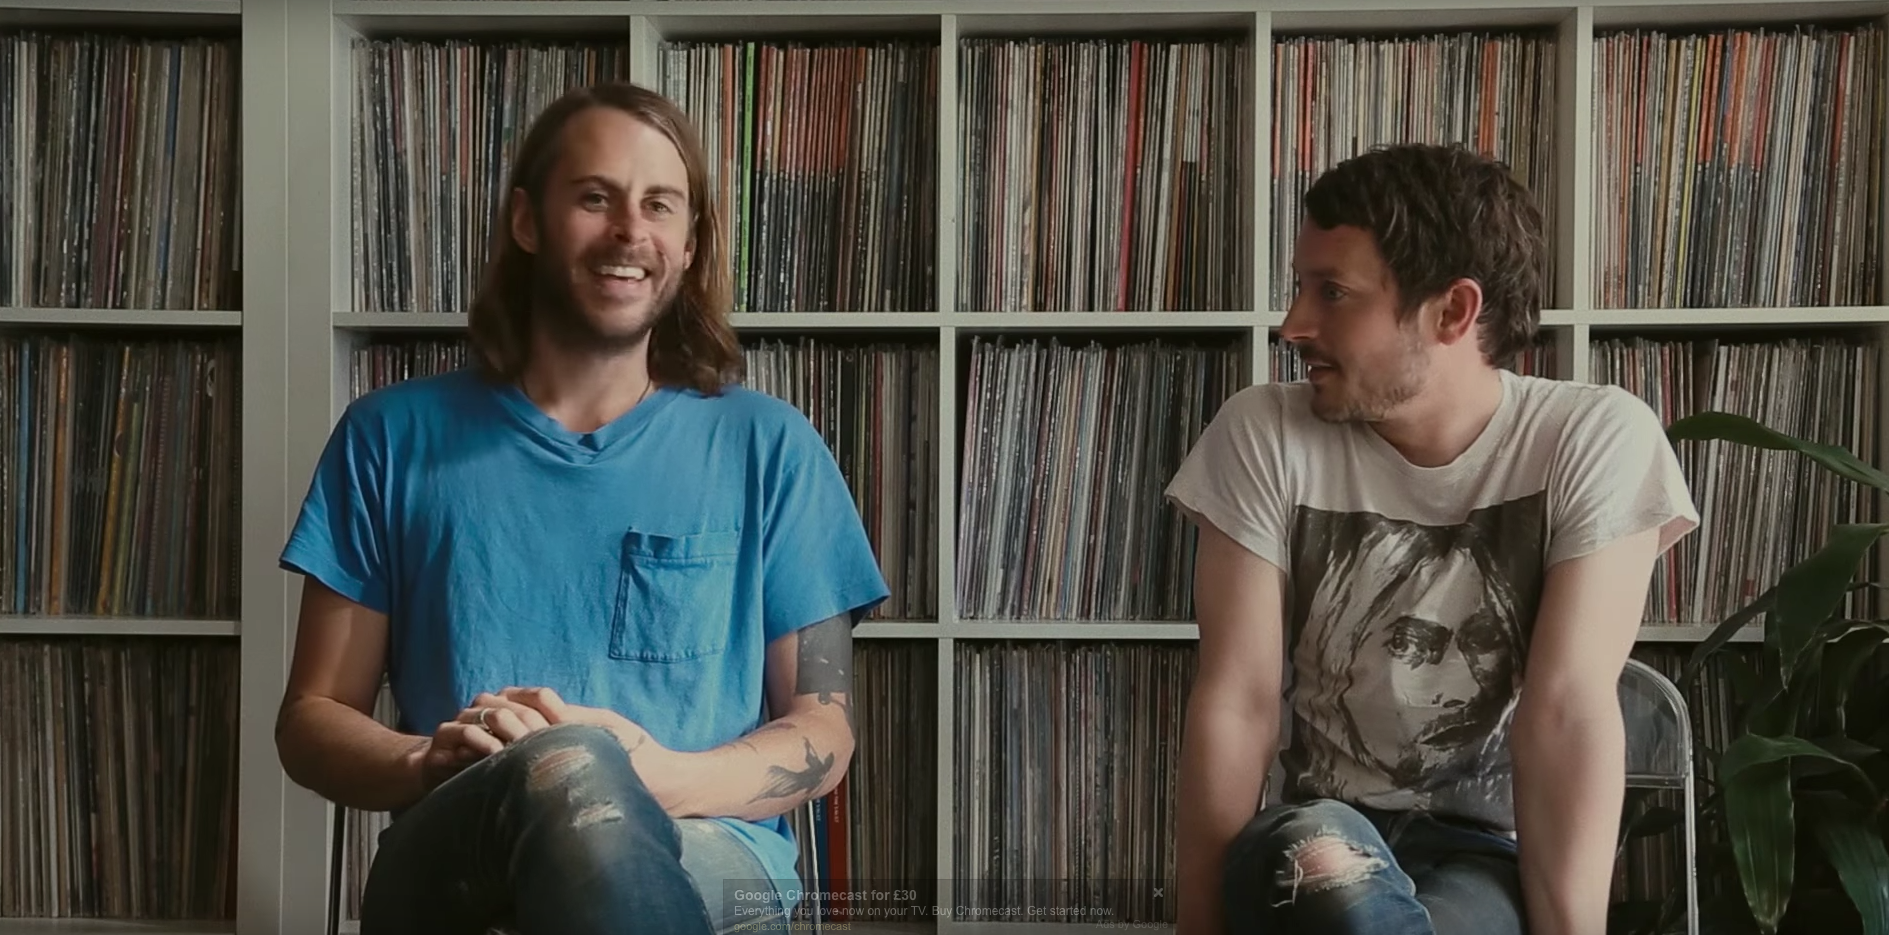 Go inside Elijah Wood and Zach Cowie's record room in our new short film